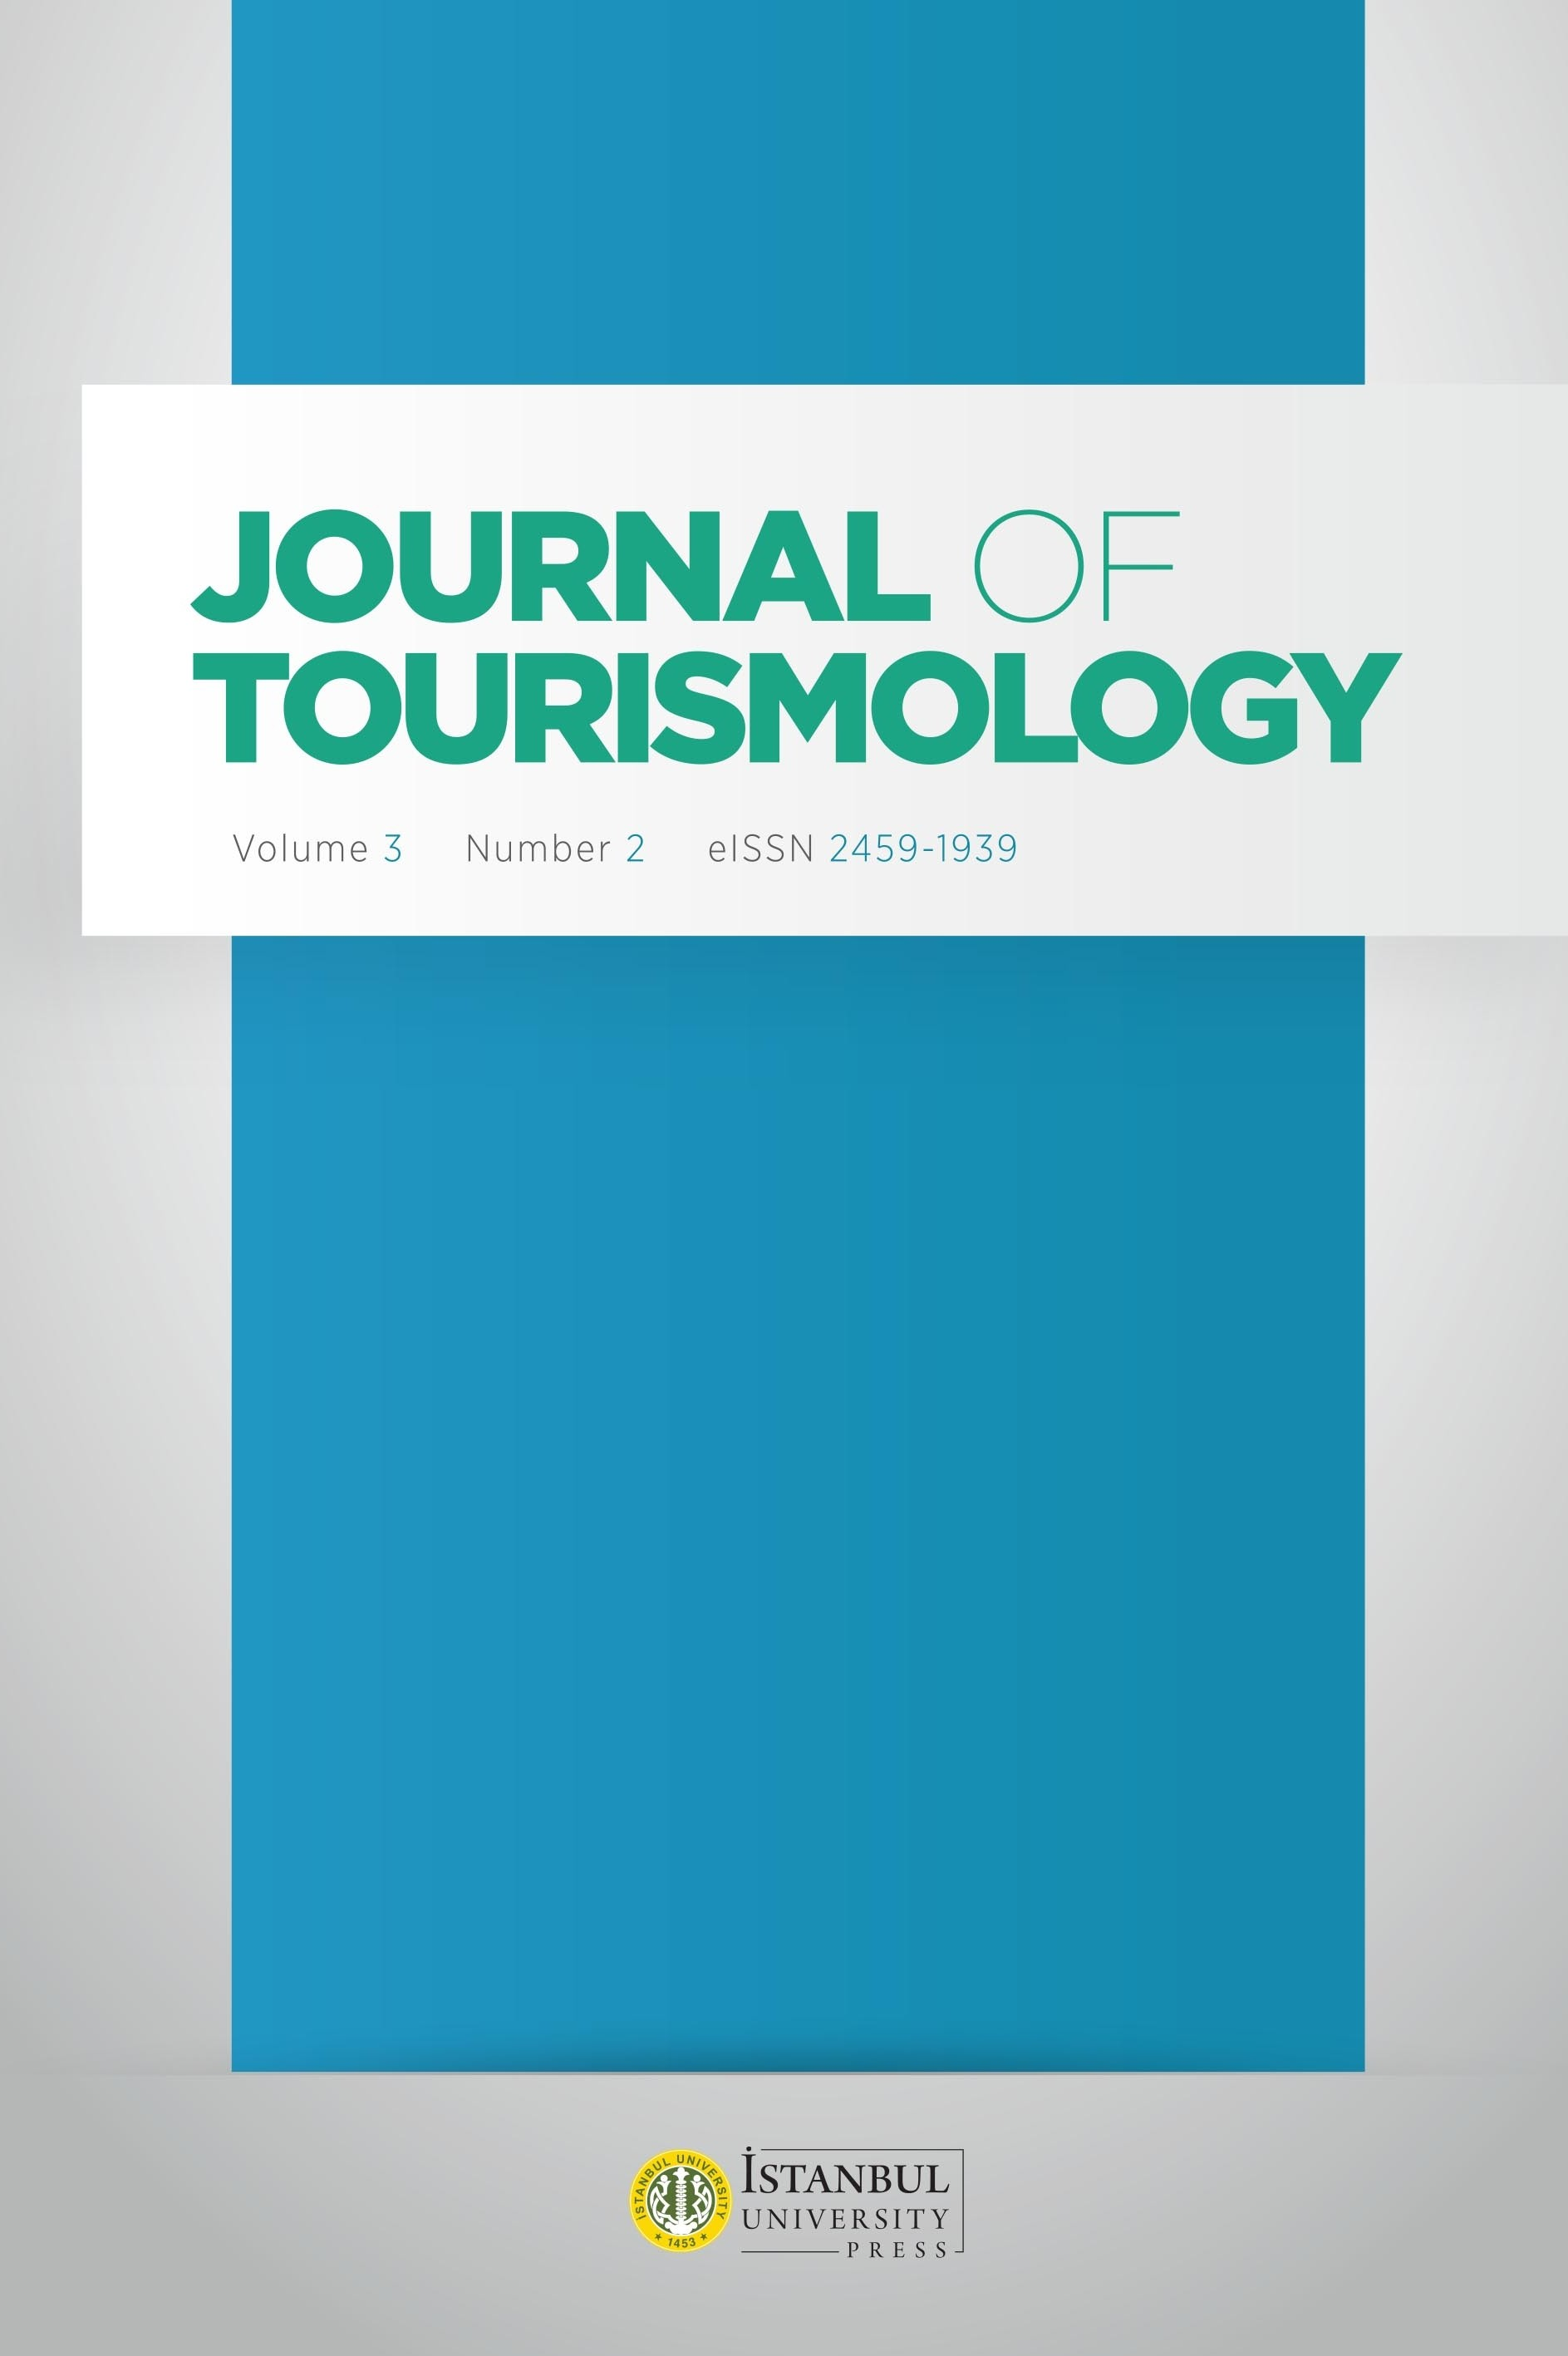 Journal of Tourismology